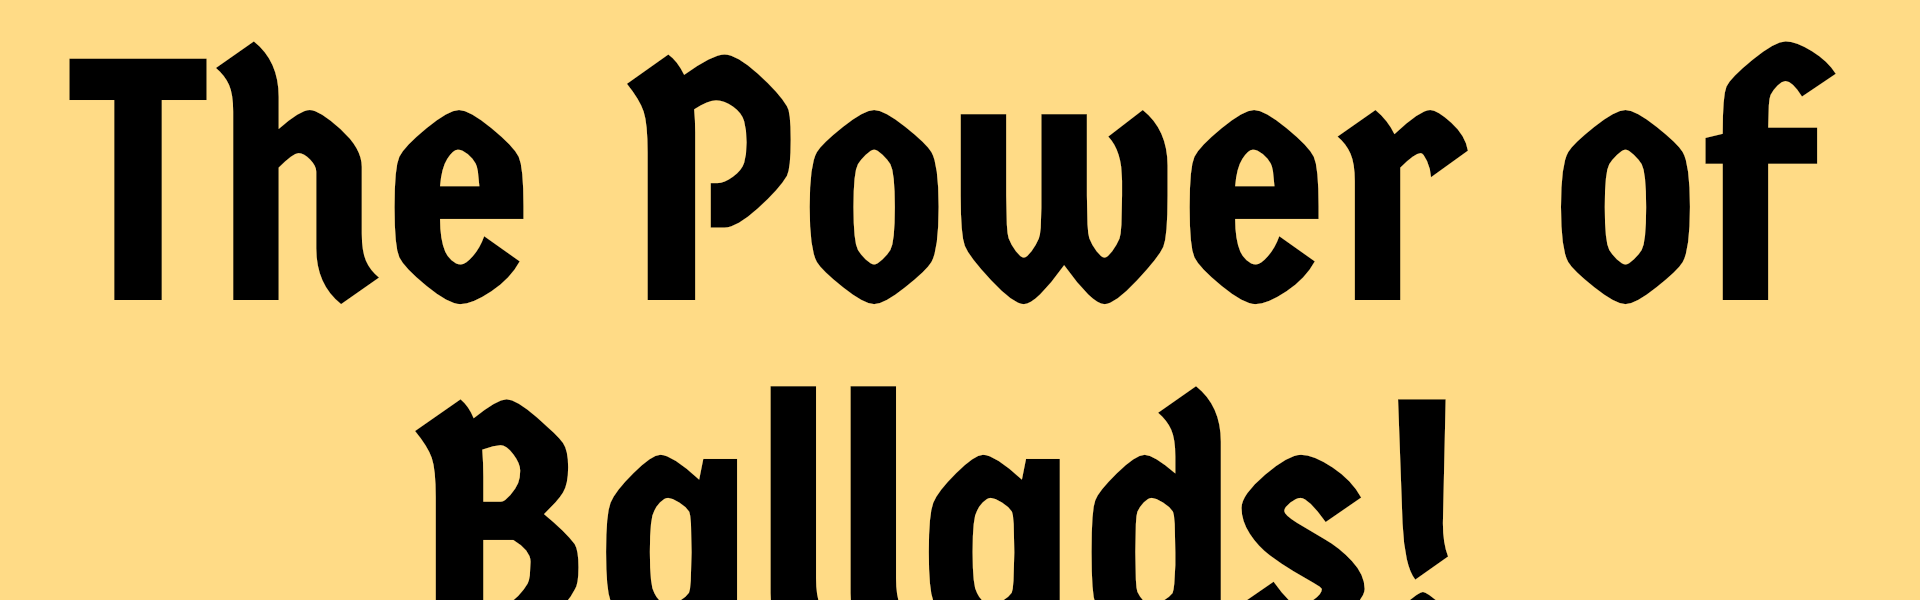 The Power of Ballads